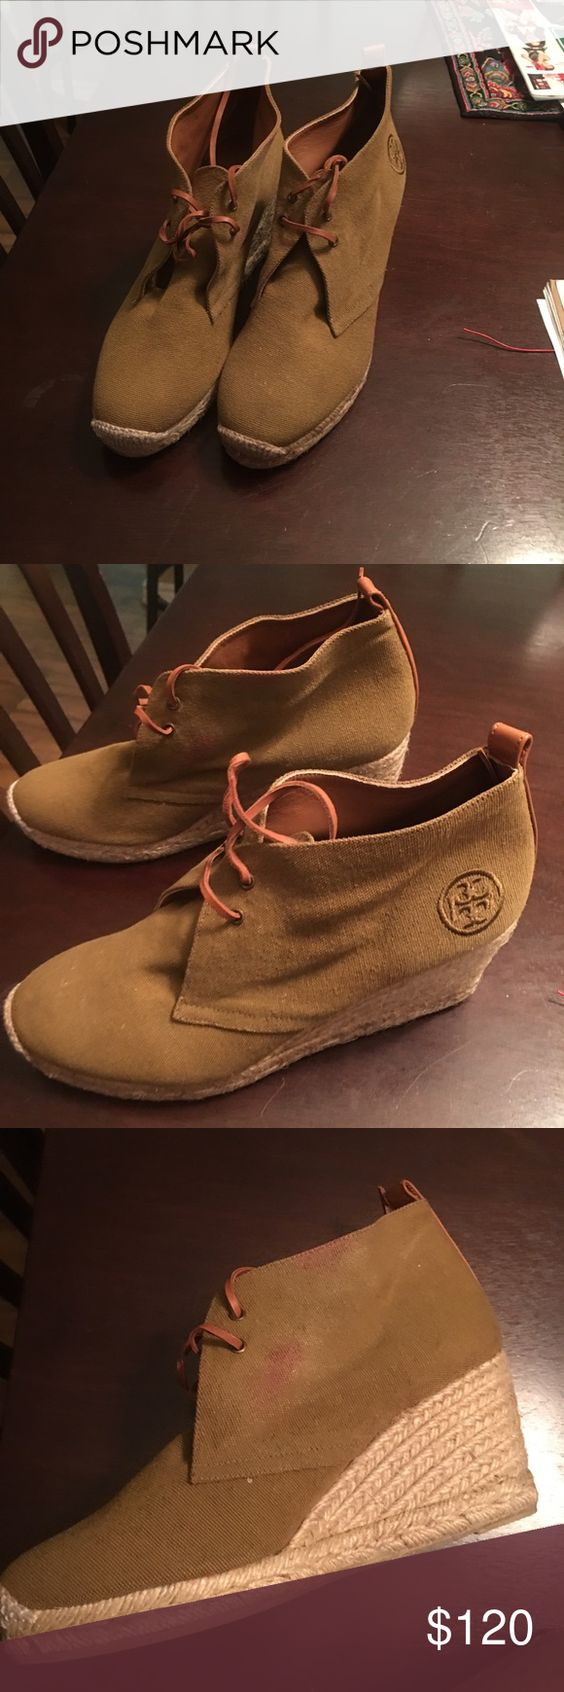 Tory burch Has a red spot u can clean up Tory Burch Shoes Wedges